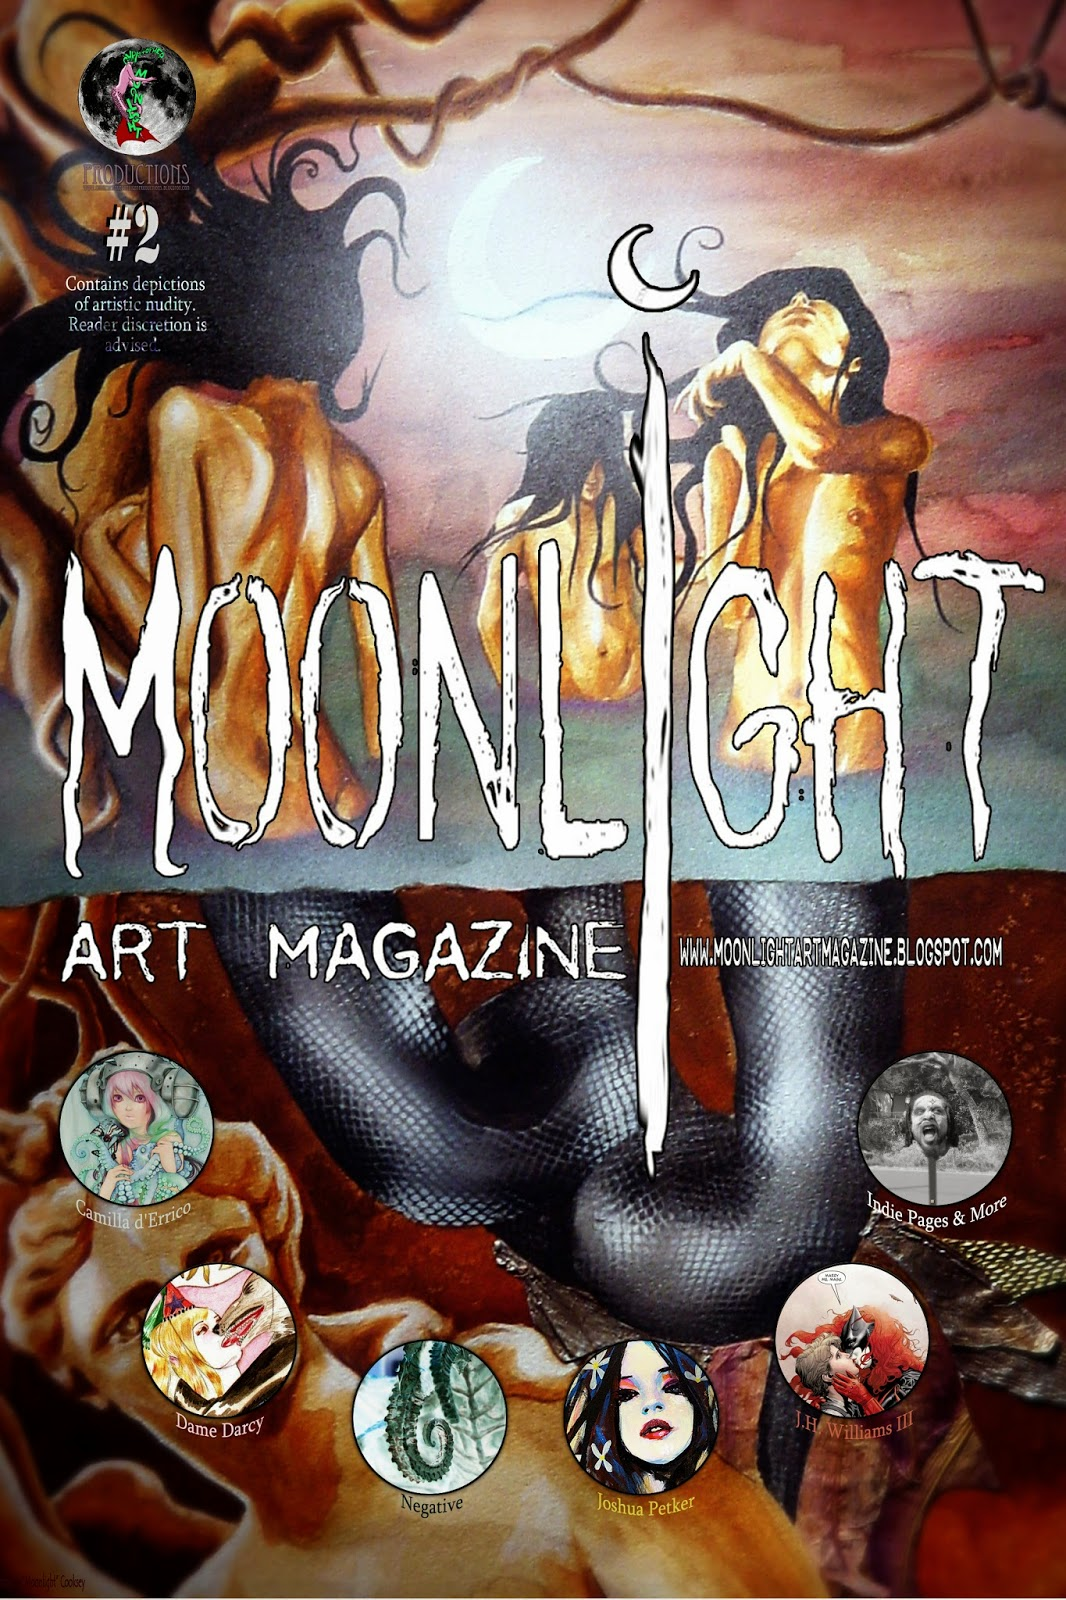 http://www.mediafire.com/download/4x9g65txrgpzv71/Moonlight+Art+Magazine+%232.pdf